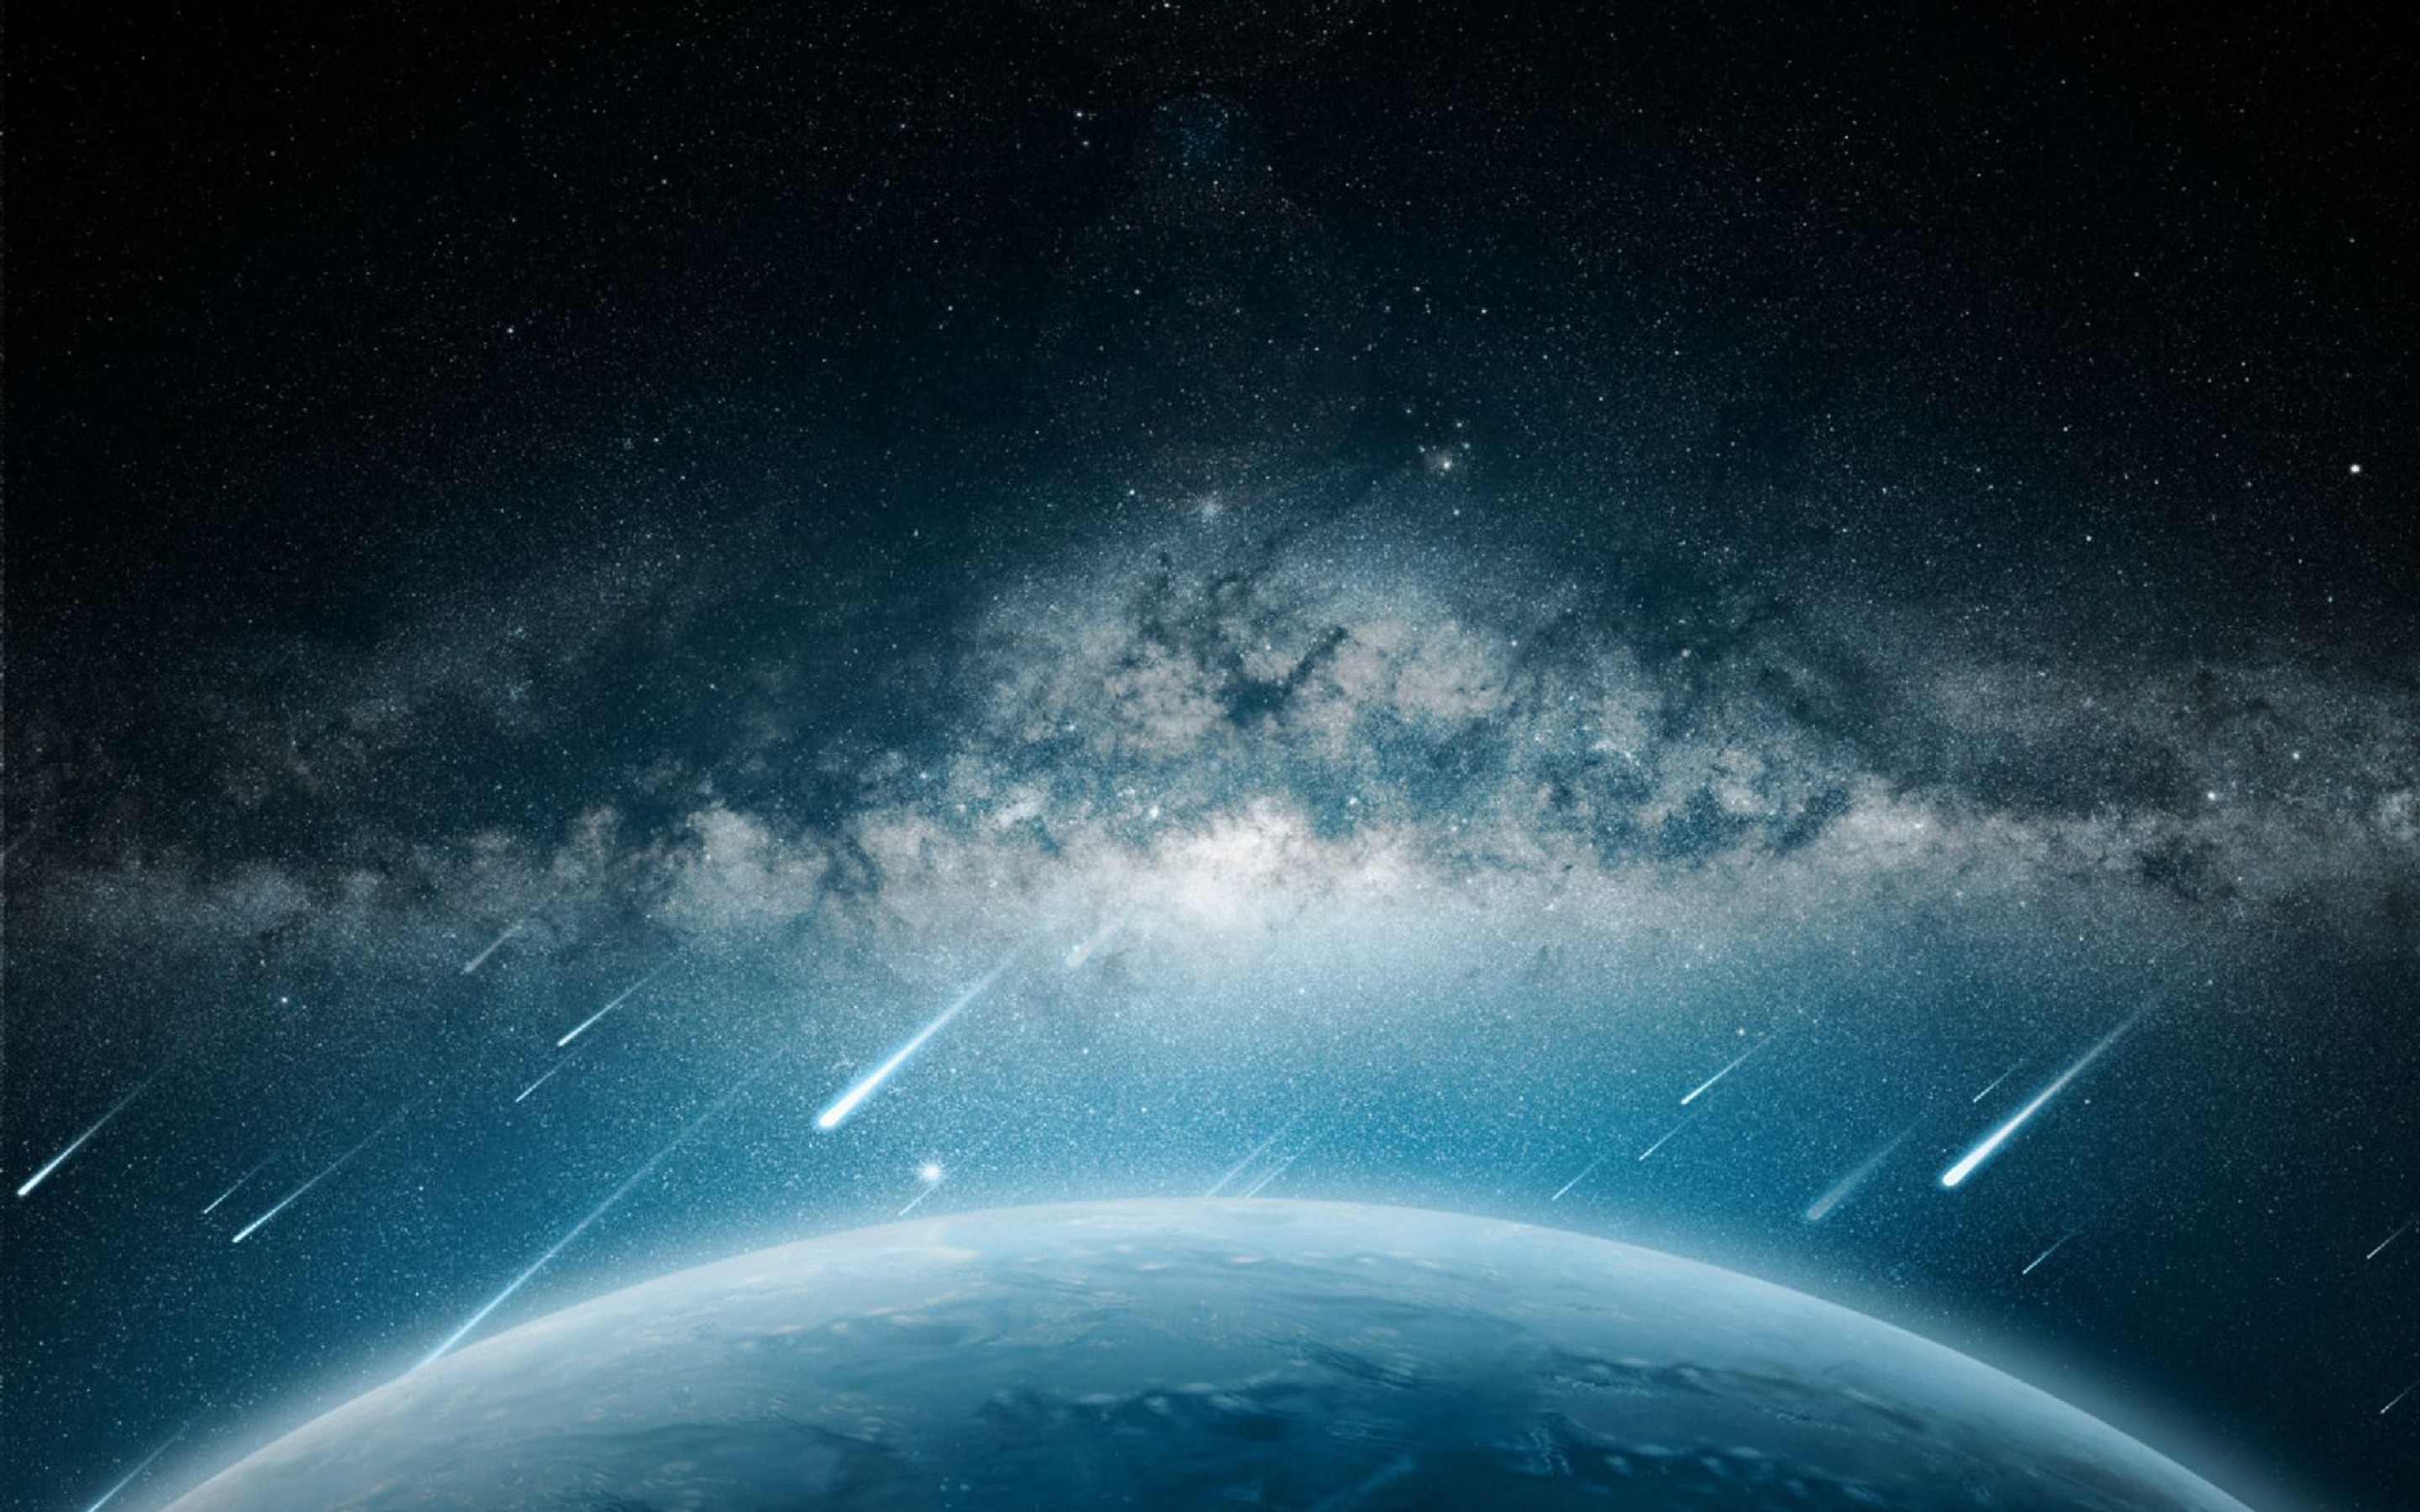 space meteorite planet rain mac wallpaper download free